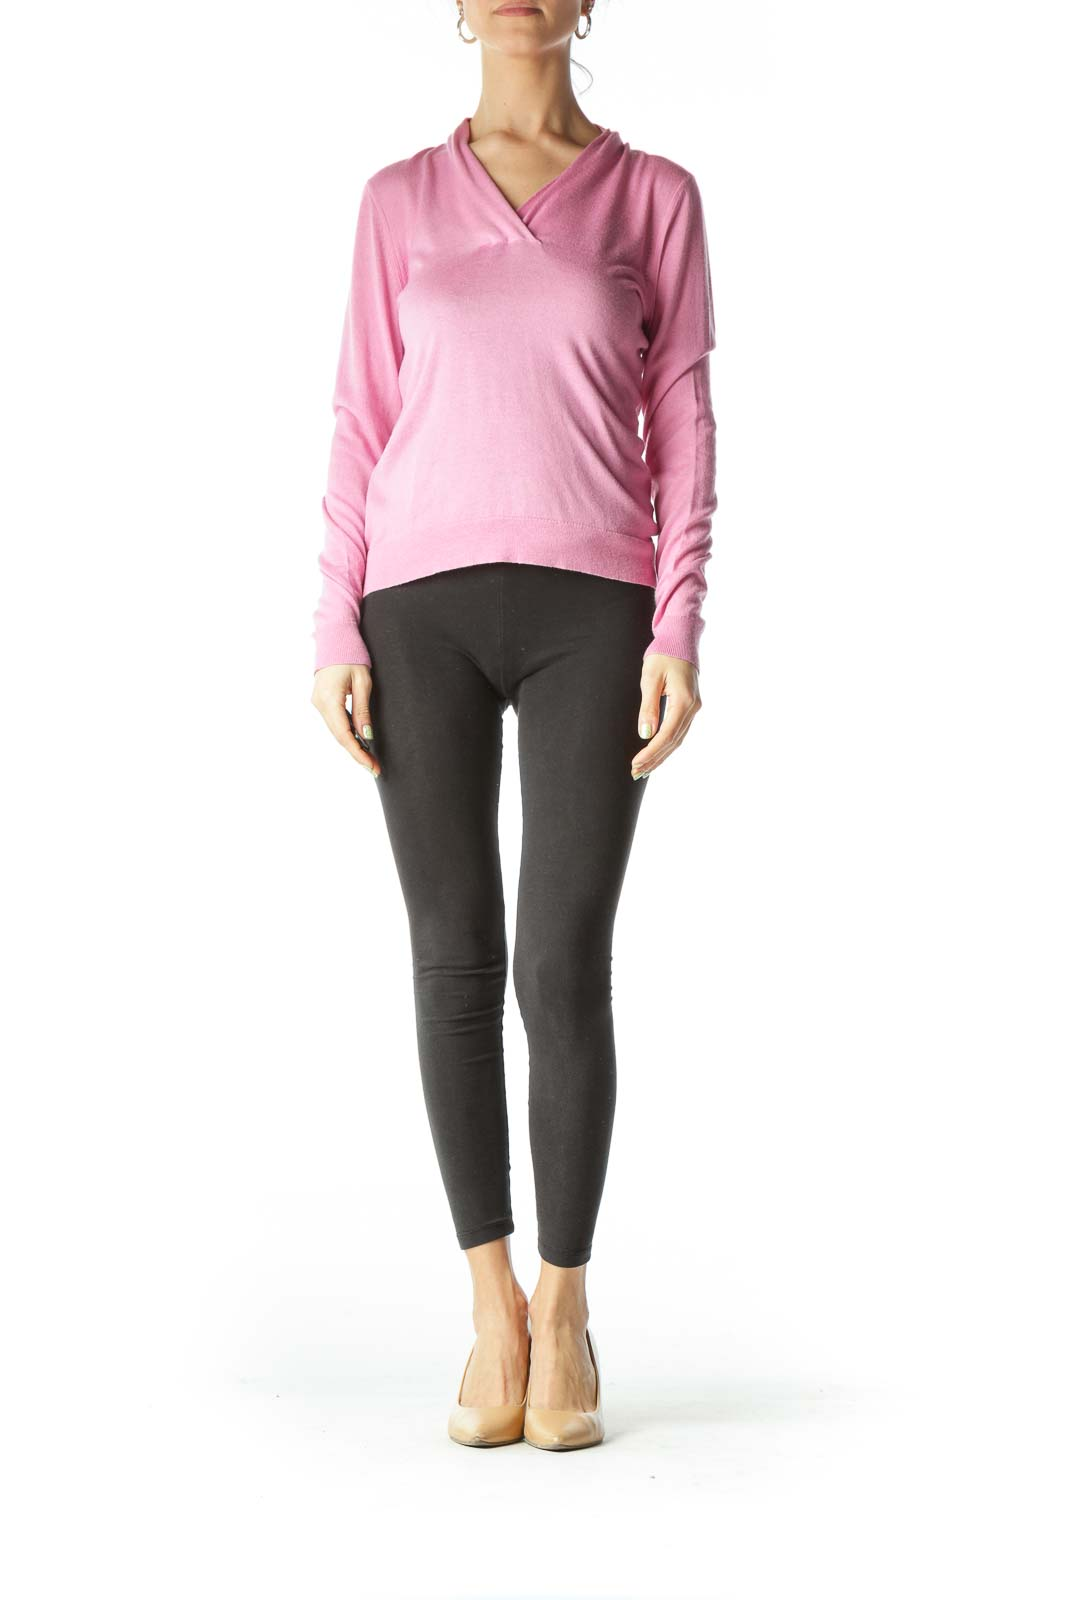 Pink Cashmere Knit Top